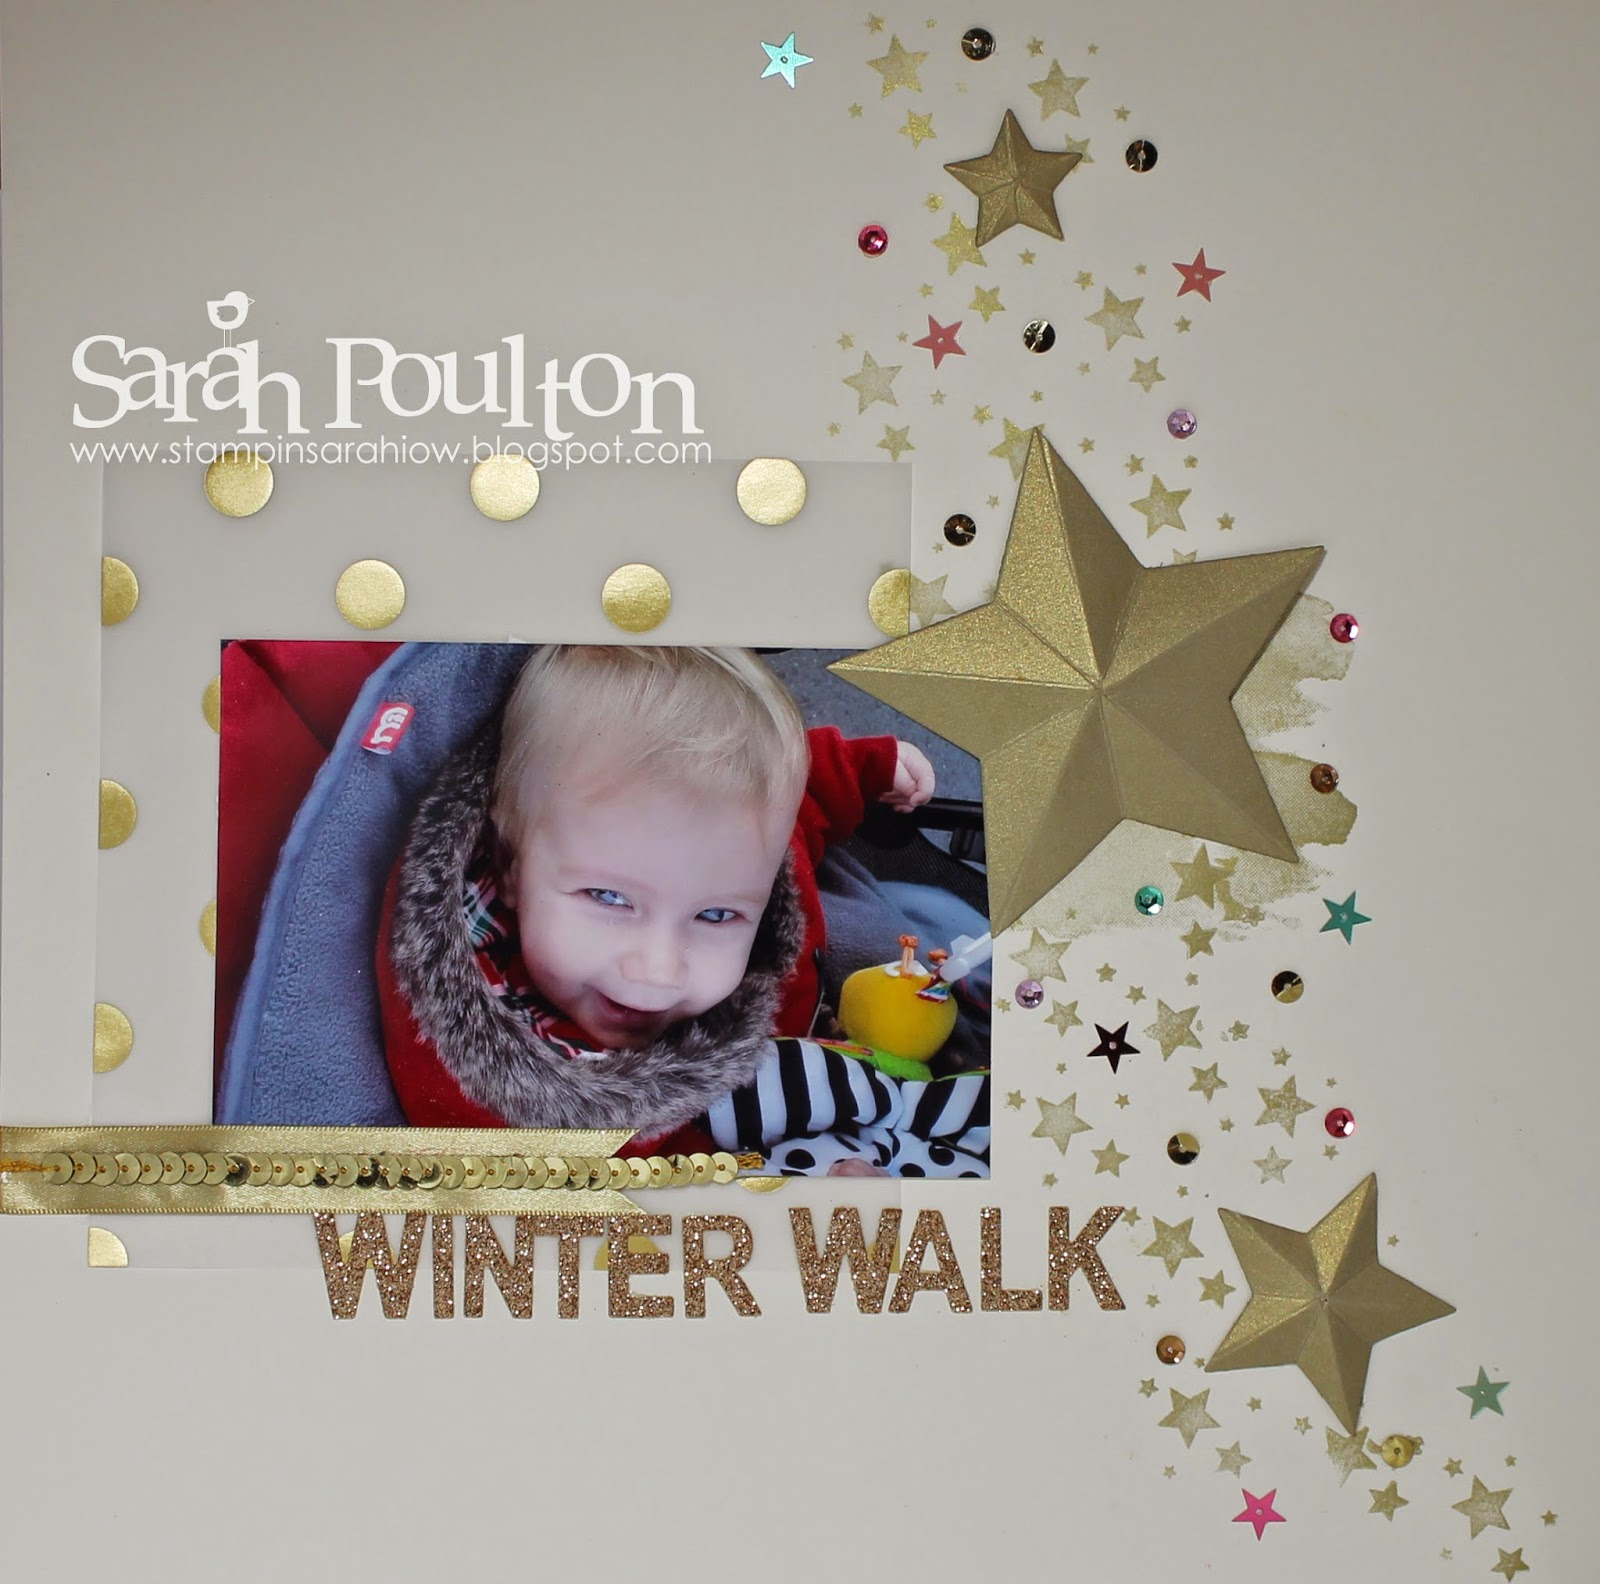 How to scrapbook uk - For This Page I Used A Very Vanilla Base With A 6 Square Of Gold Fancy Foil Designer Vellum I Stamped The Small Star Flurries In Gold Encore Ink Using The